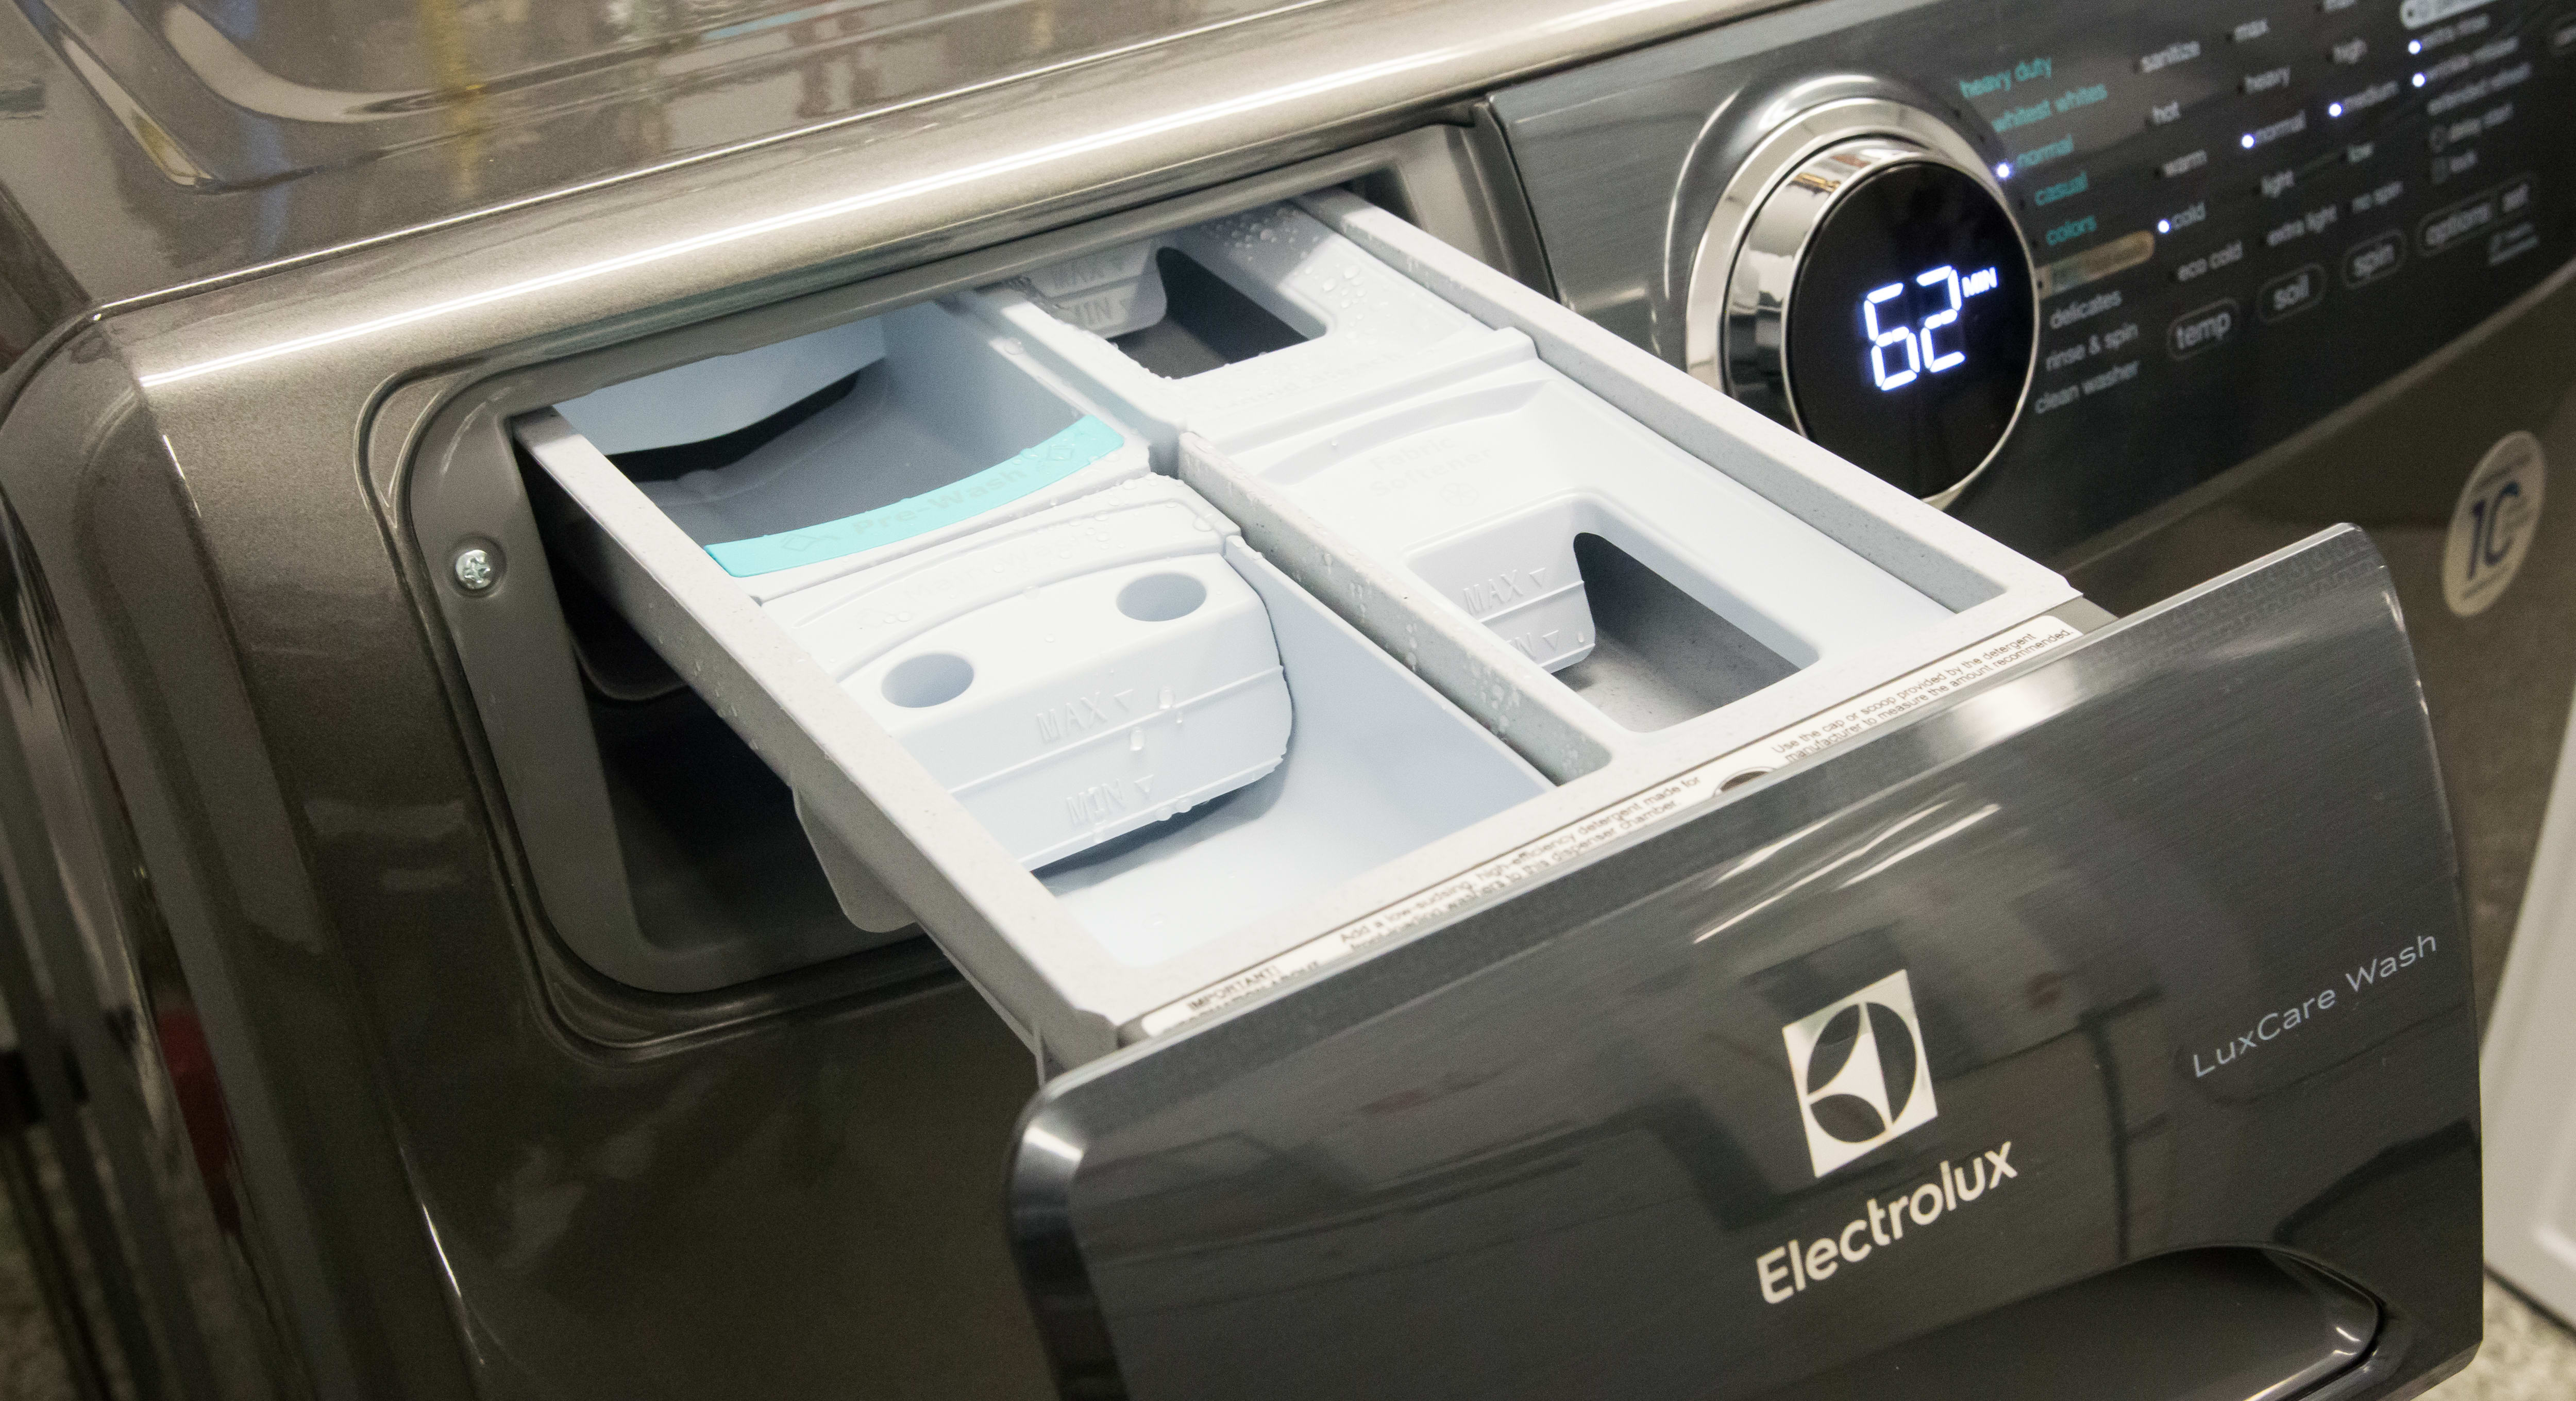 The detergent dispenser, with separate sections for softener, bleach, and pre-wash.